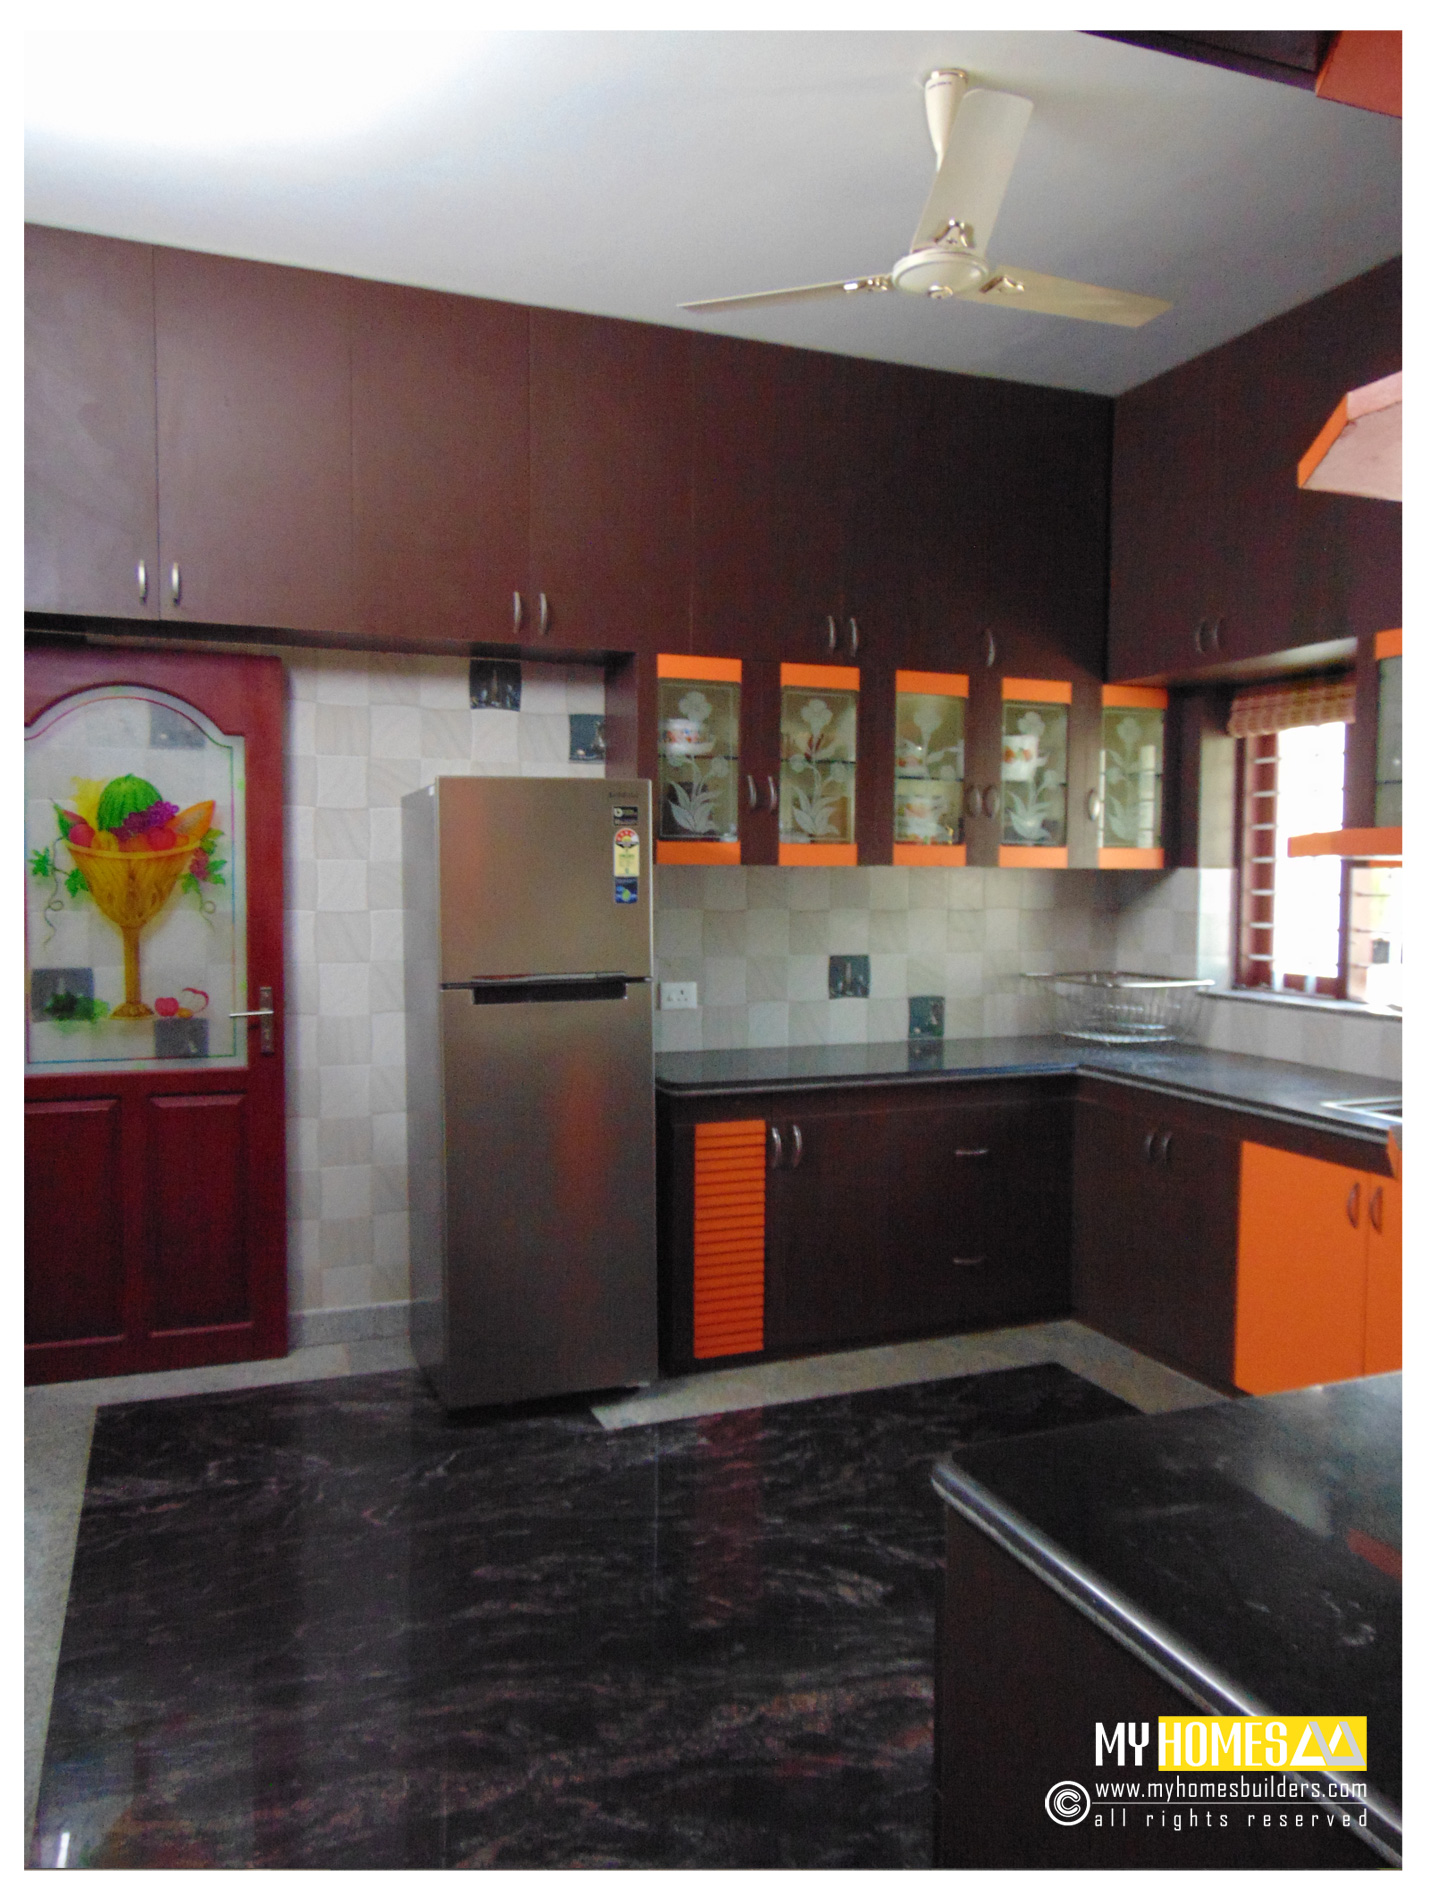 Kerala kitchen designs idea in modular style for house in for Home kitchen design